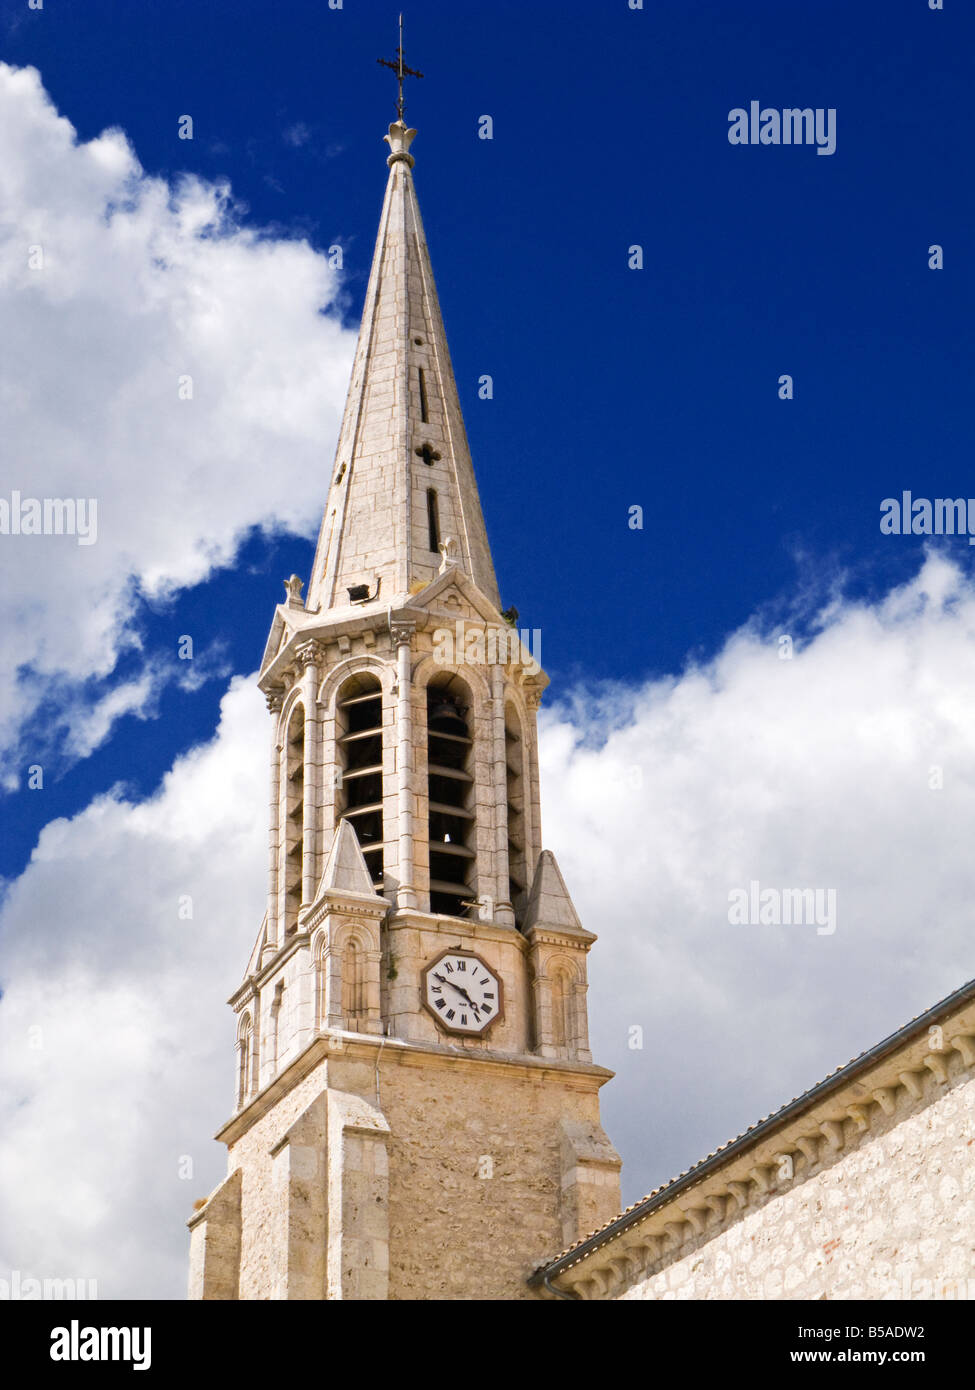 Church Steeple Bell Tower And Clock France Europe Stock